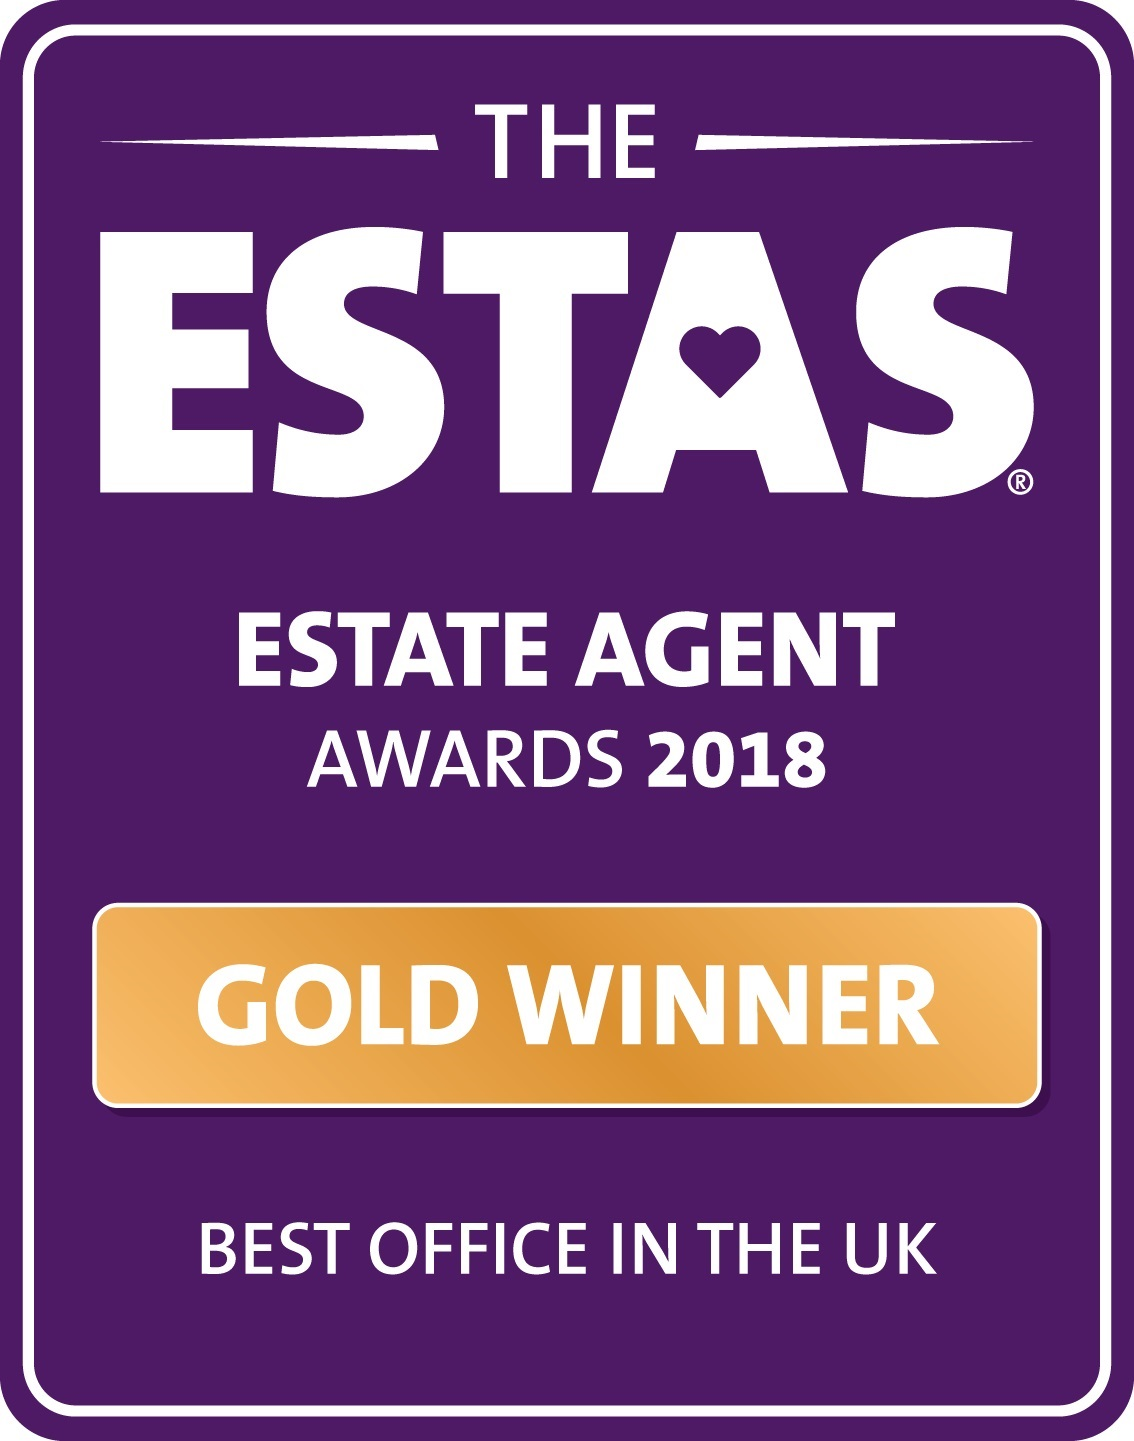 WE HAVE BEEN VOTED BEST ESTATE AGENT IN THE UK 2018